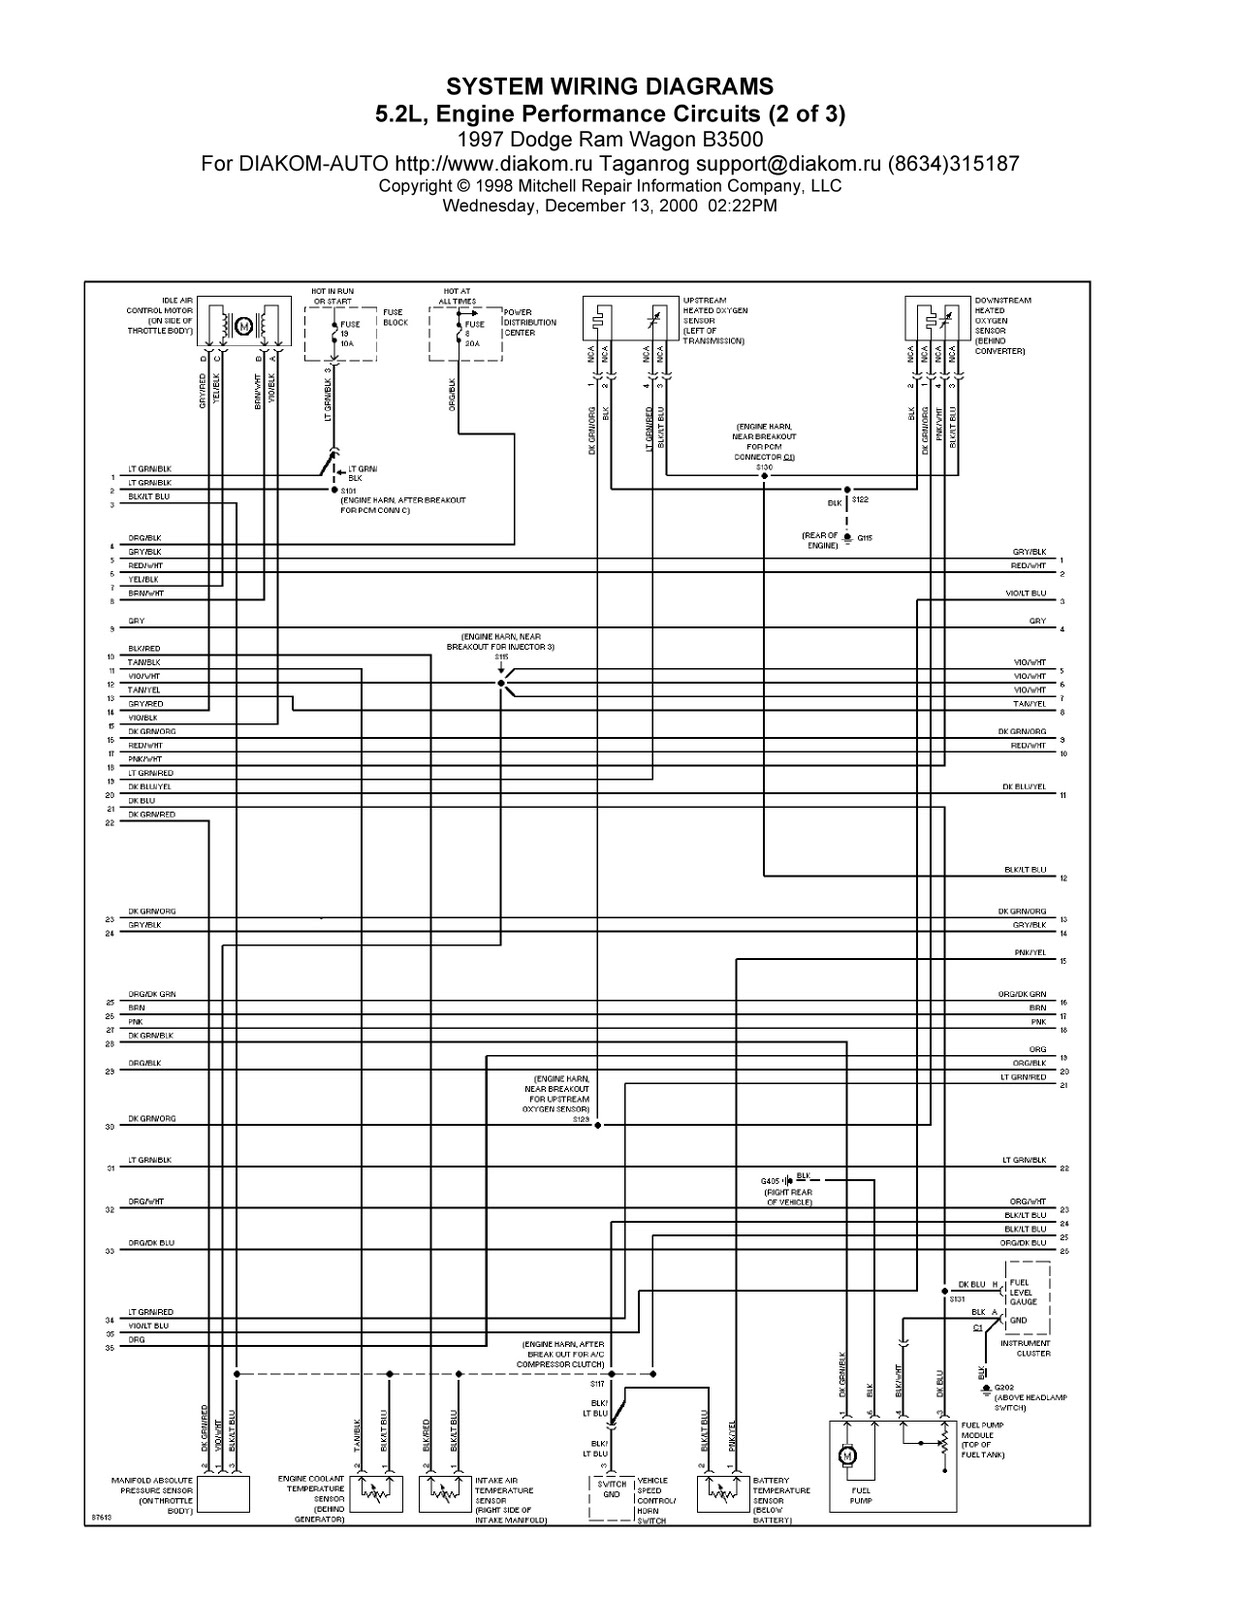 1997 Dodge Ram Wagon B3500 System Wiring Diagram 5,2L